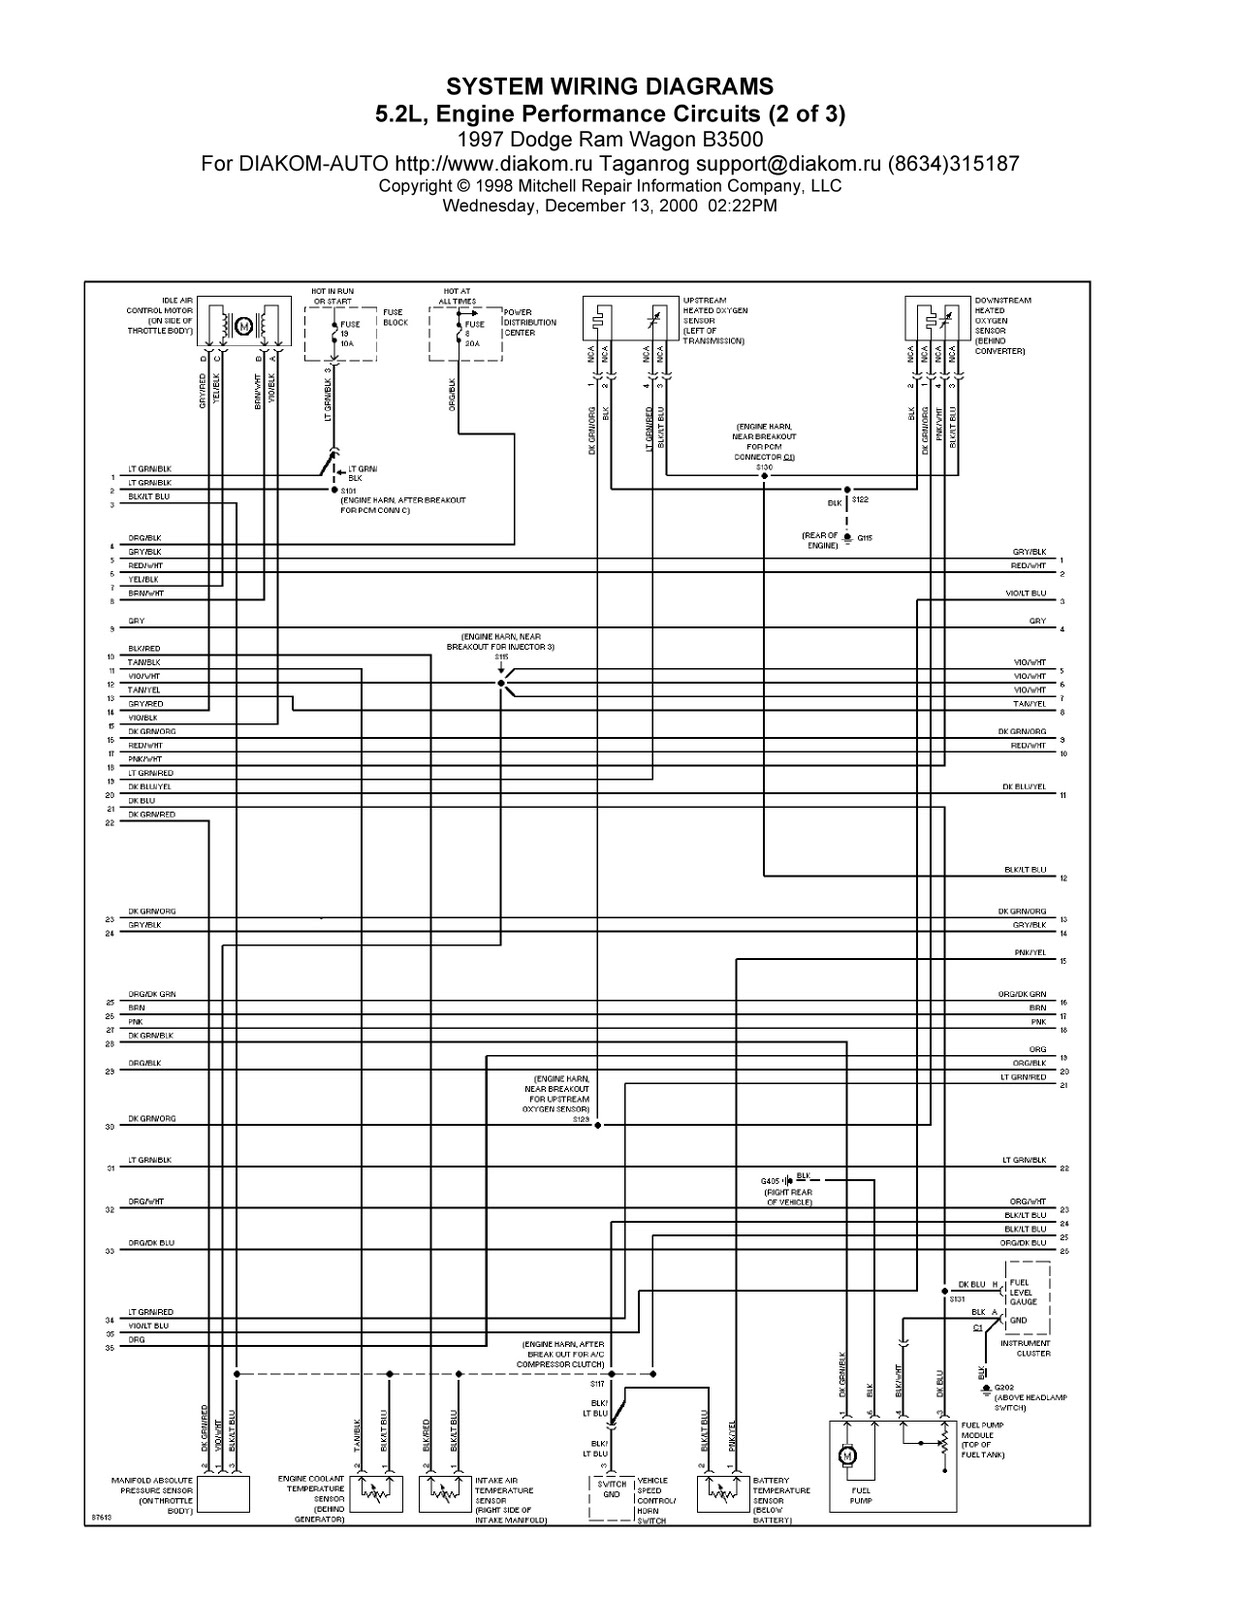 1997 Dodge Ram Wagon B3500 System Wiring Diagram 5,2L